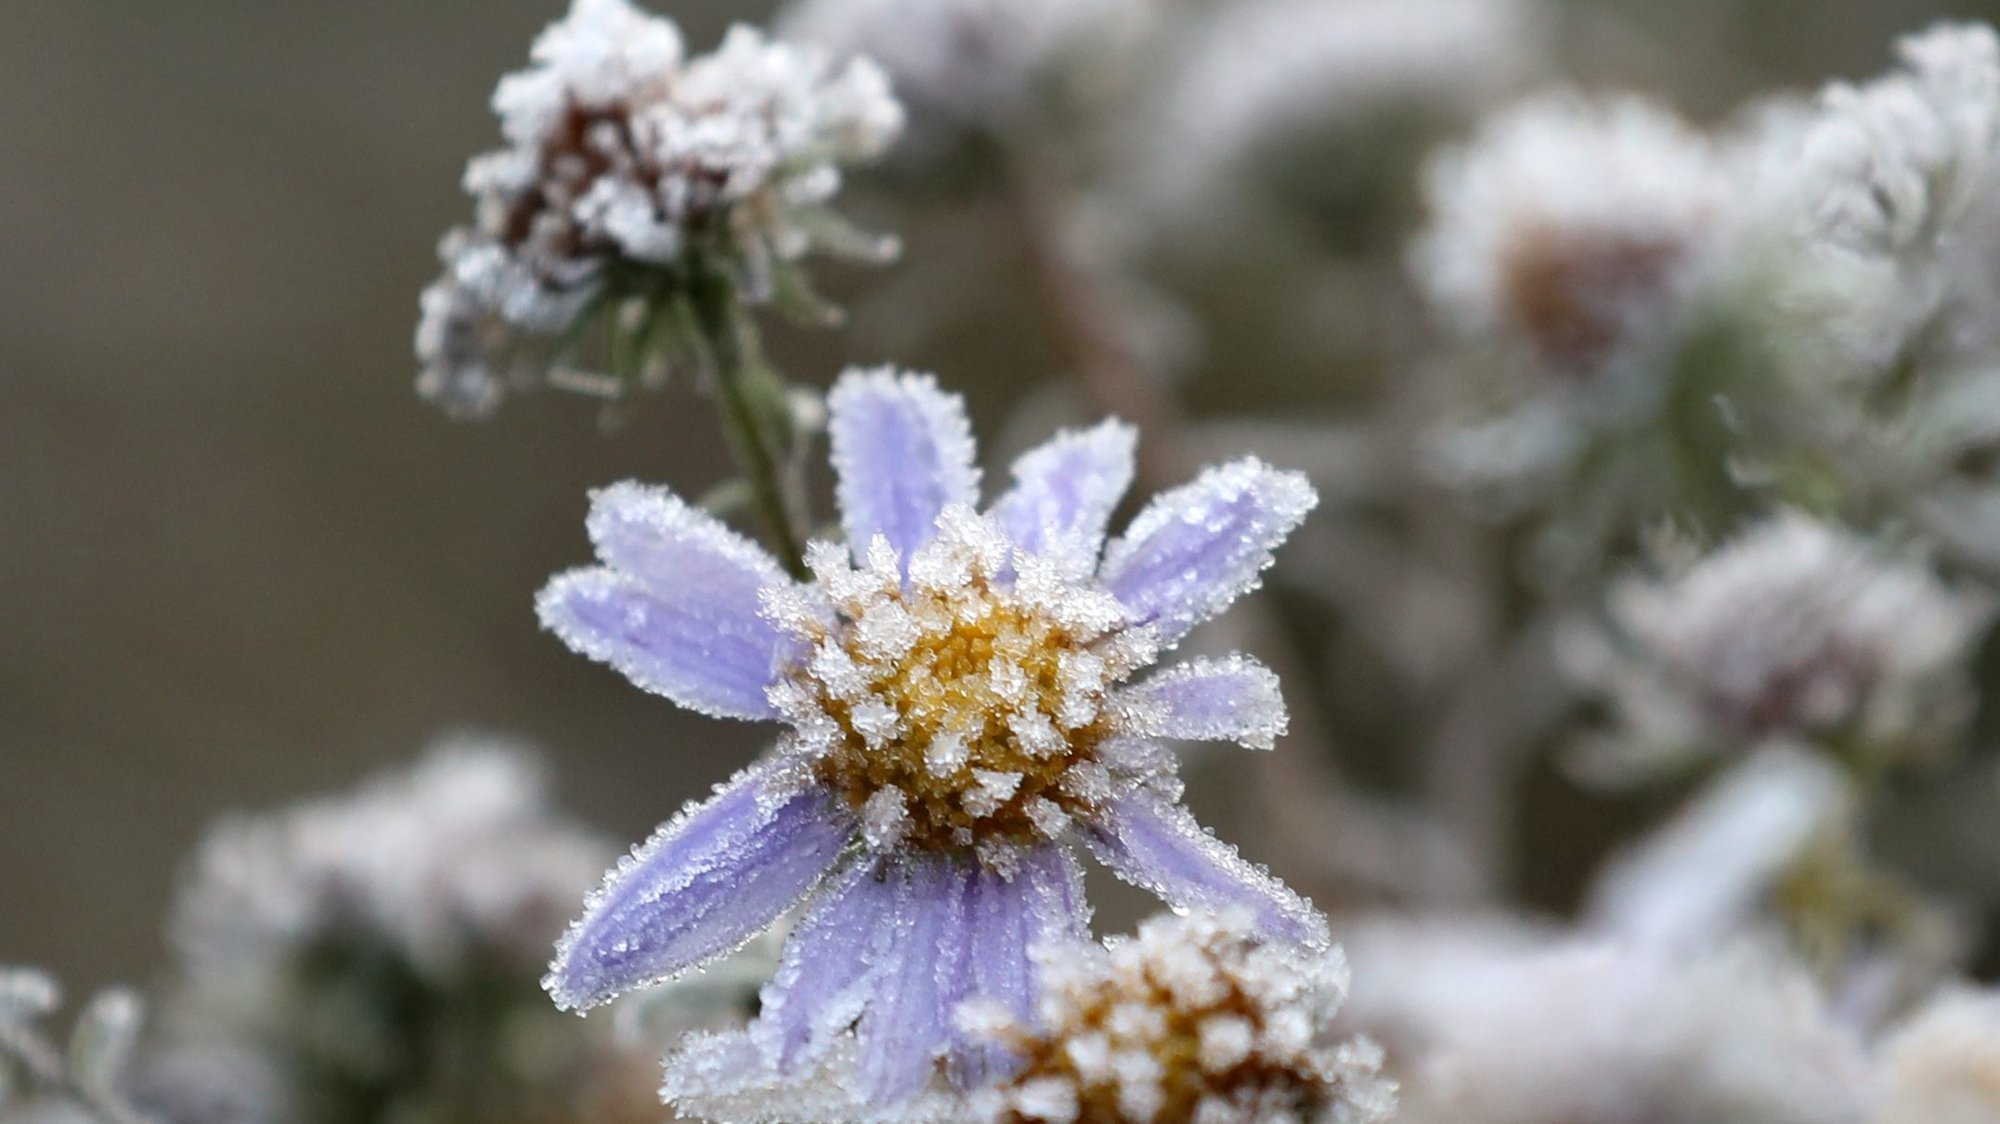 epa05600354 Flowers are covered in frost at a roadside along Daegwallyeong, a mountain pass in the eastern Gangwon Province, South Korea, 24 October 2016. Temperatures dropped to minus 0.5 degrees Celsius, early on the same day, the lowest in the region this fall.  EPA/YONHAP SOUTH KOREA OUT